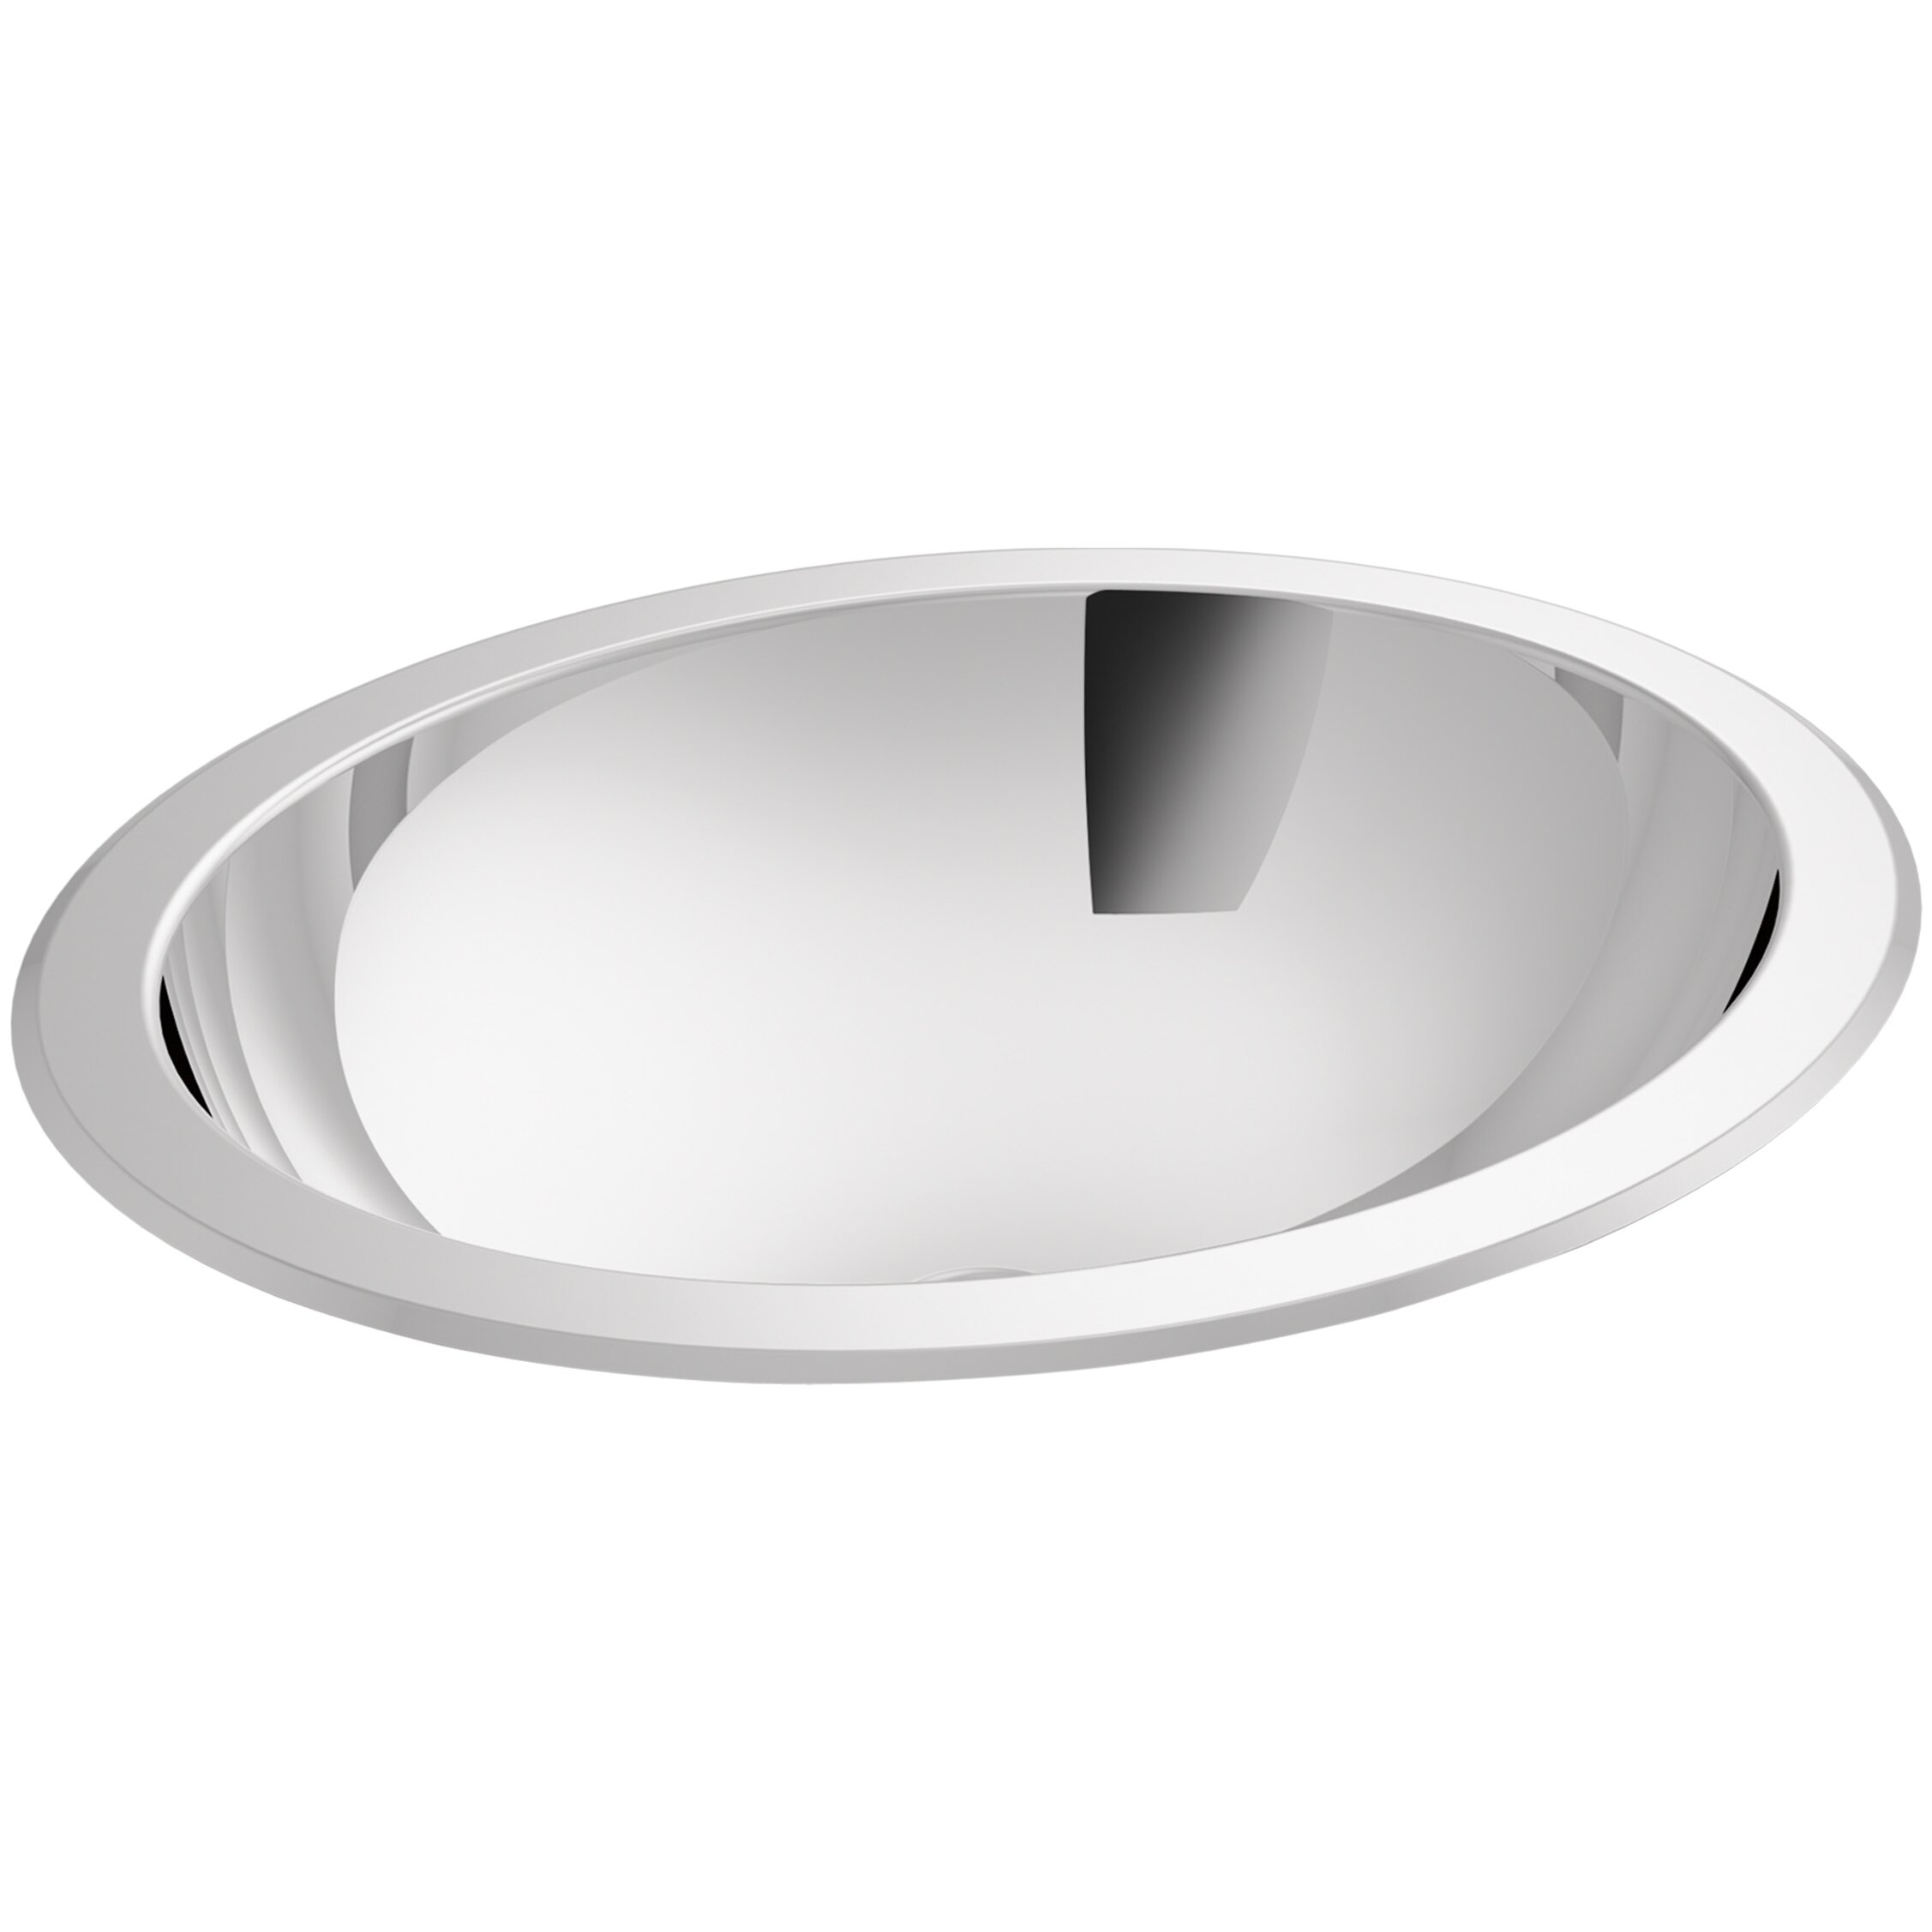 Kohler Bachata Drop In Undermount Bathroom Sink With Mirror Finish And